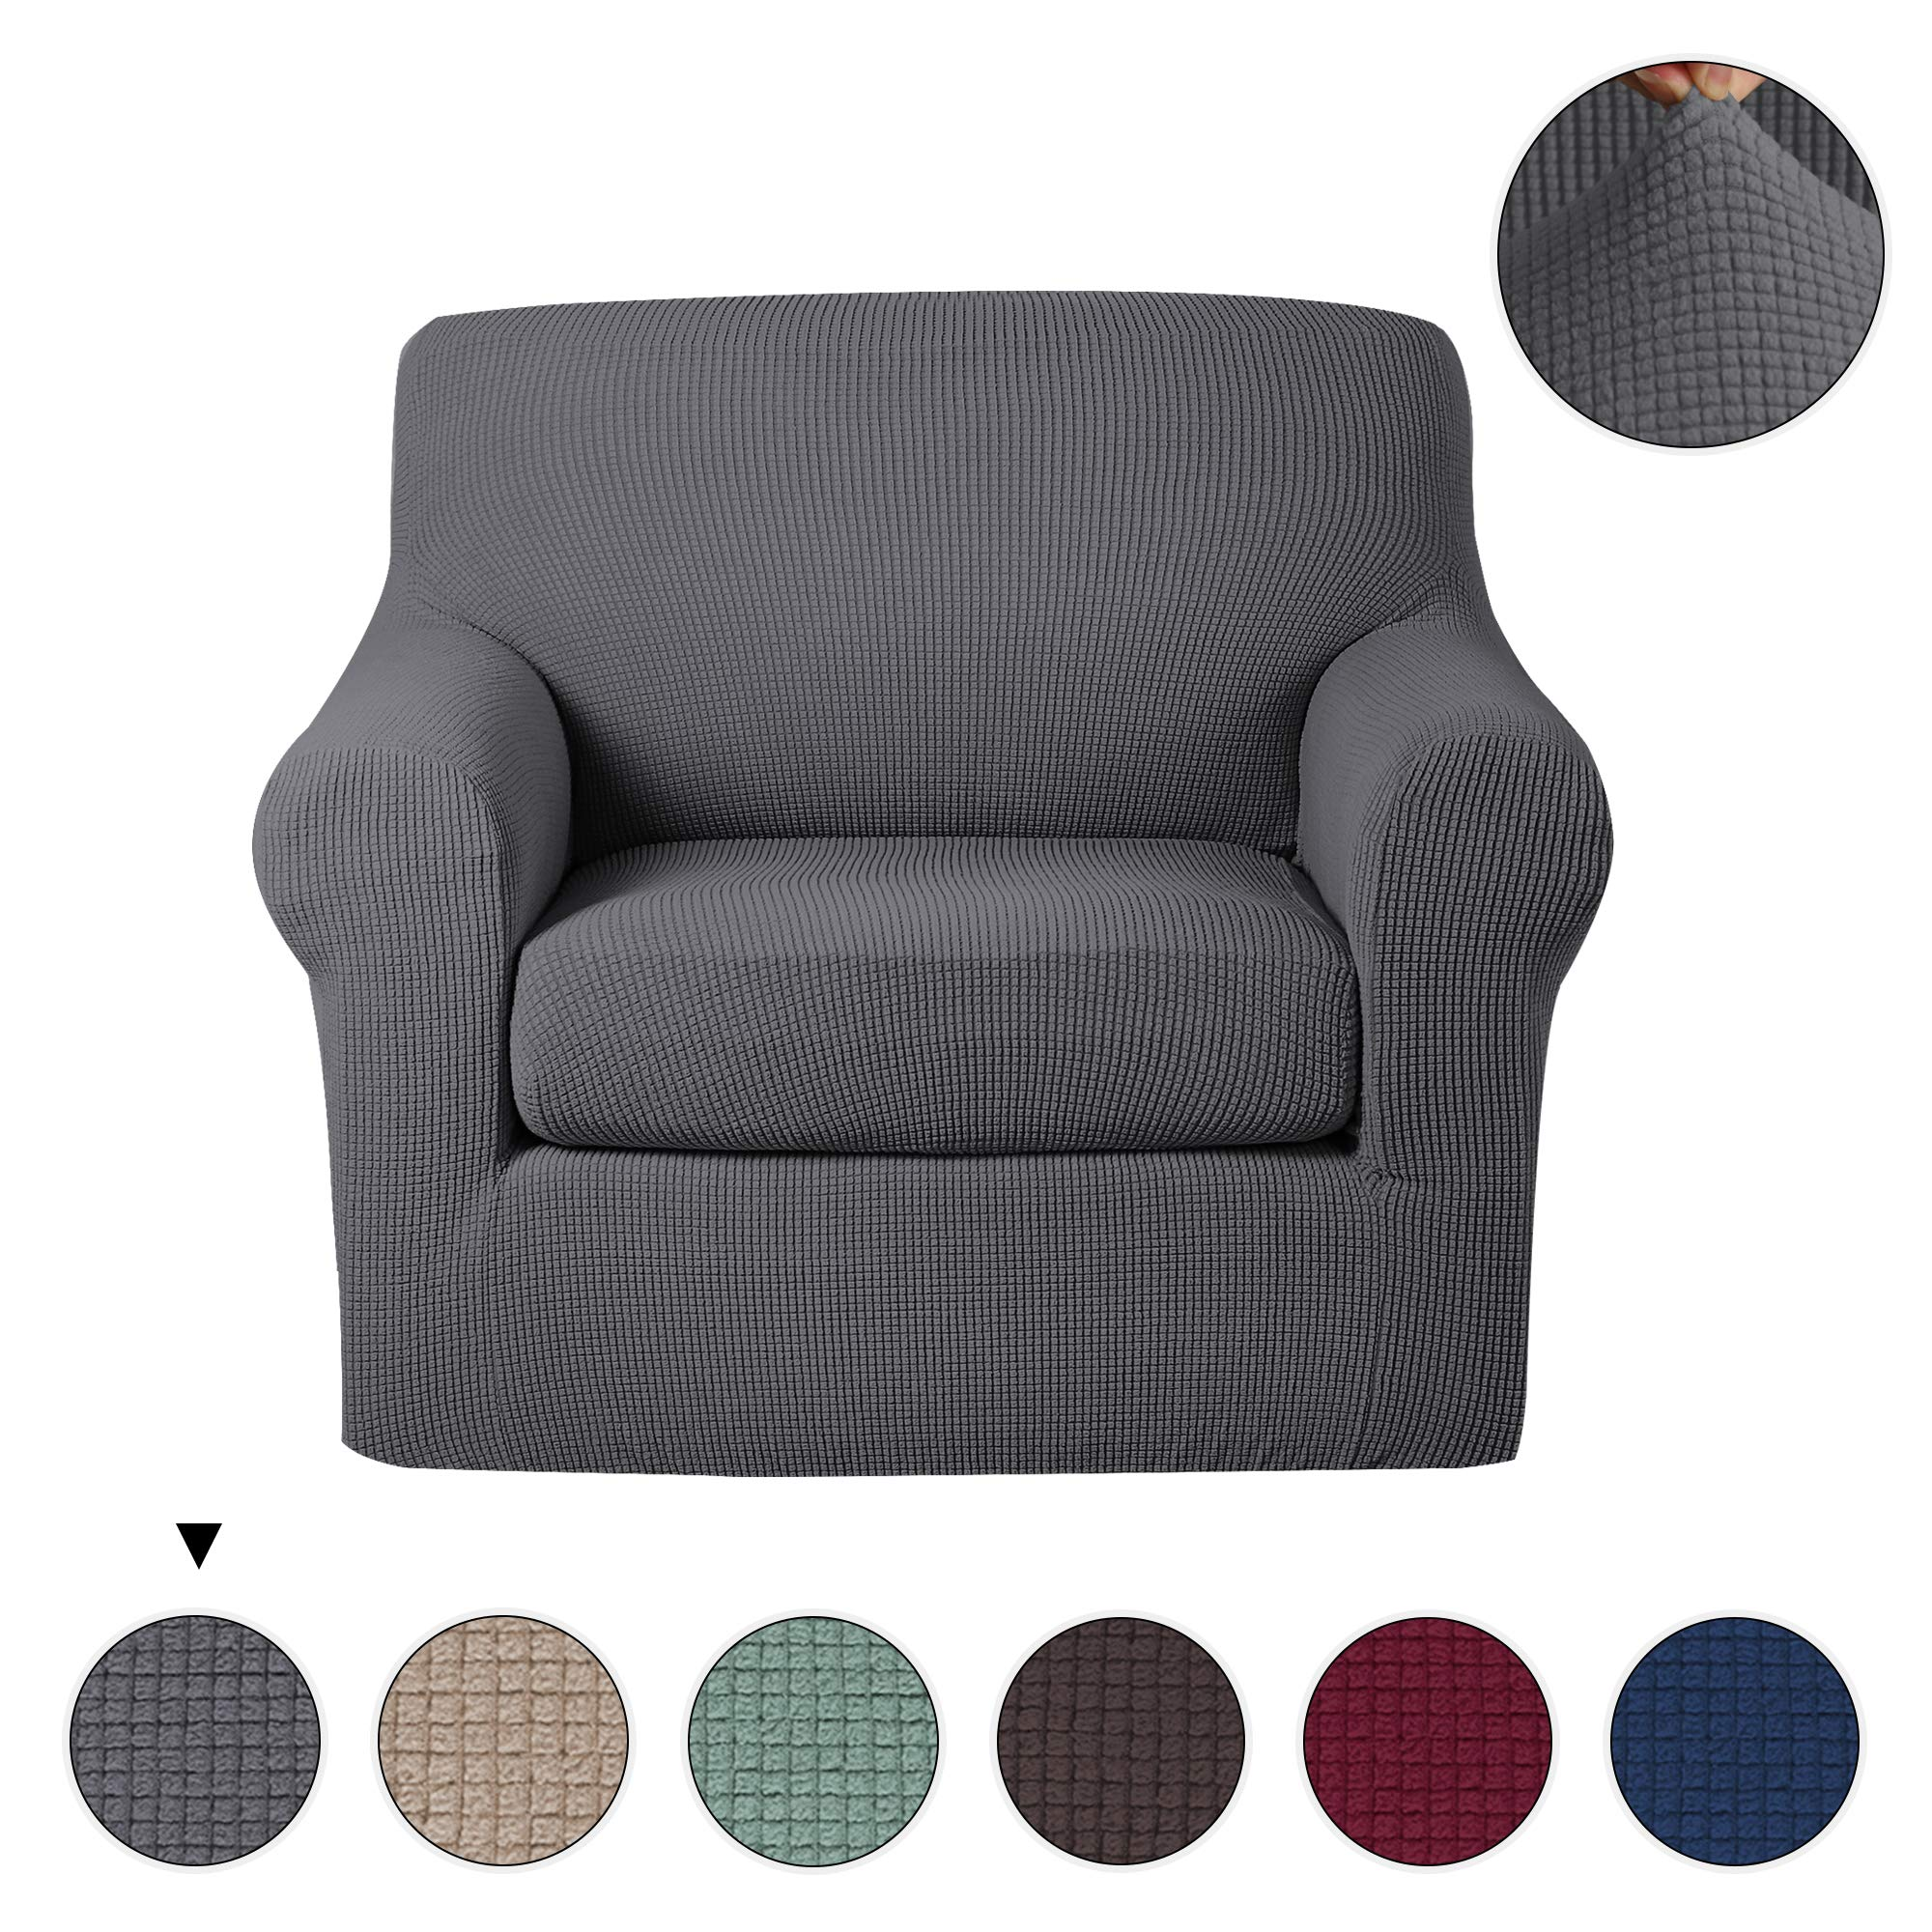 Turquoize 2 Piece Stretch Spandex Slipcovers Elastic Bottom Chair Couch Shield, Polyester Jacquard Fabric Small Checks Cover(Chair,Grey)